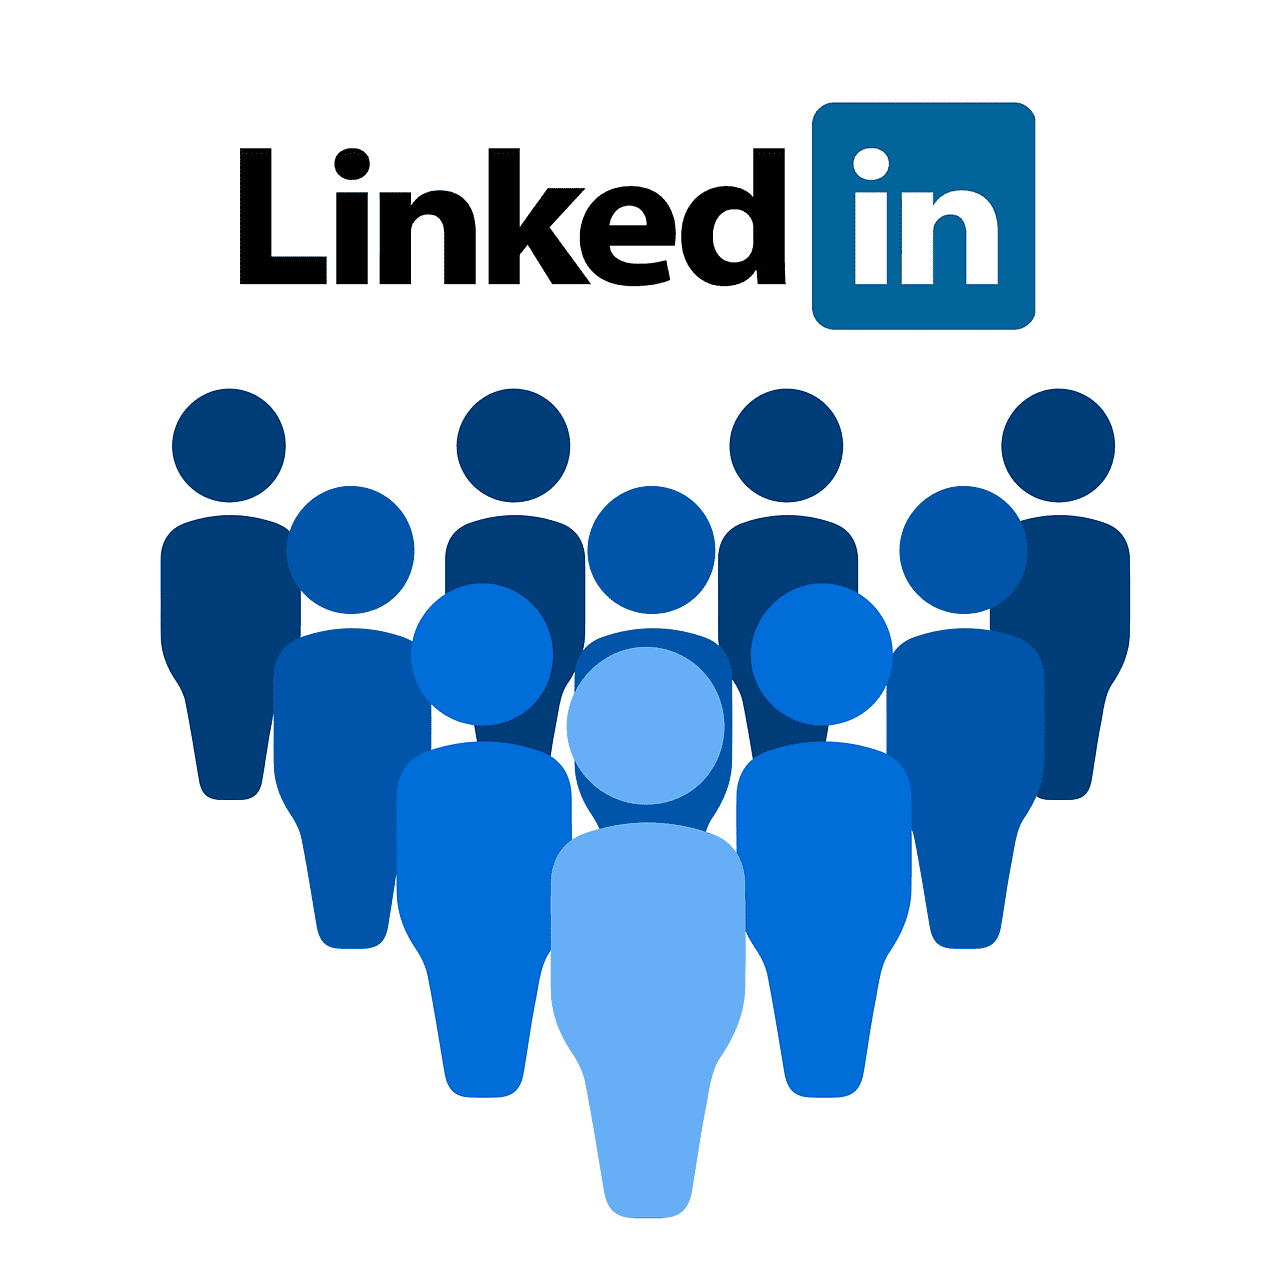 LinkedIn: More Than Just an Online Resume